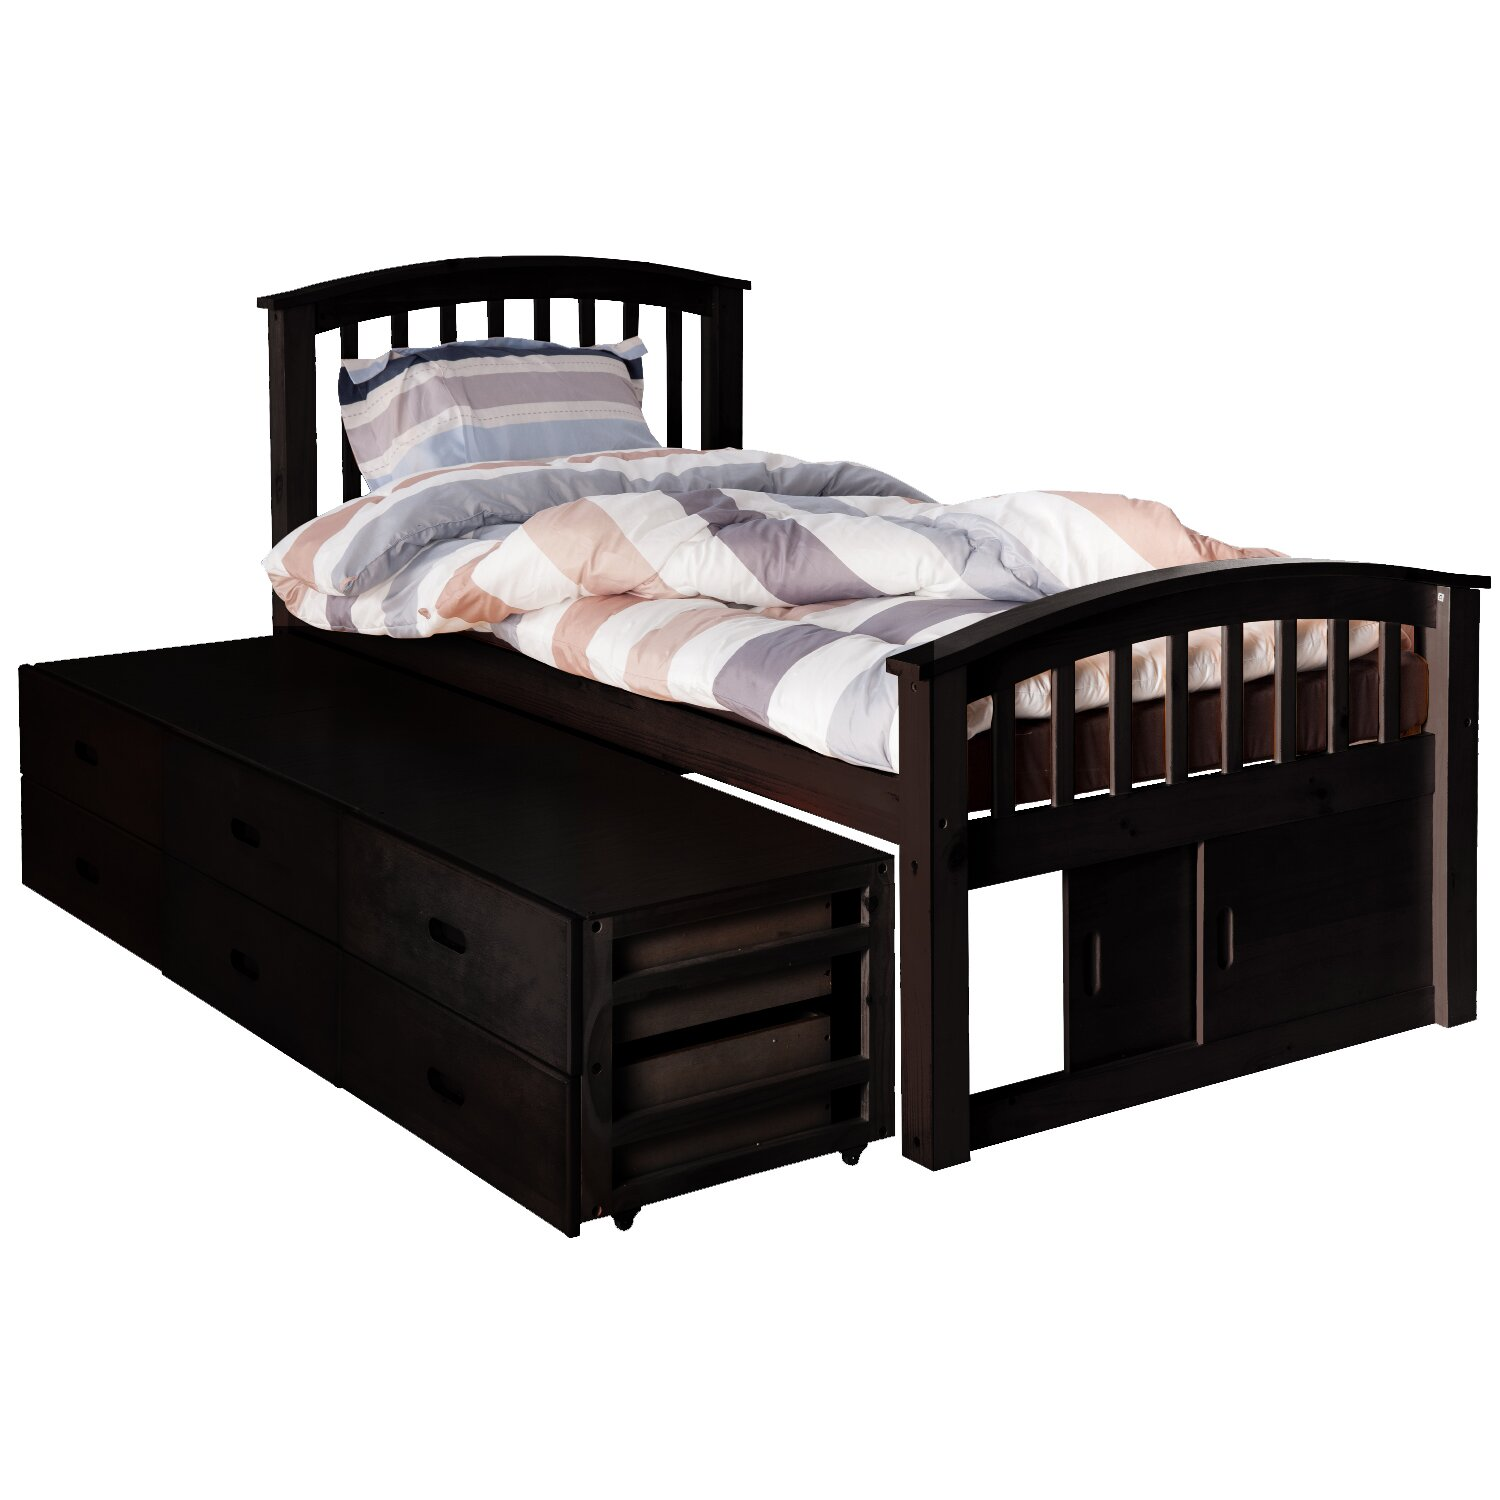 Twin platform bed with drawers - Merax Solid Wood Storage Twin Platform Bed With Drawers